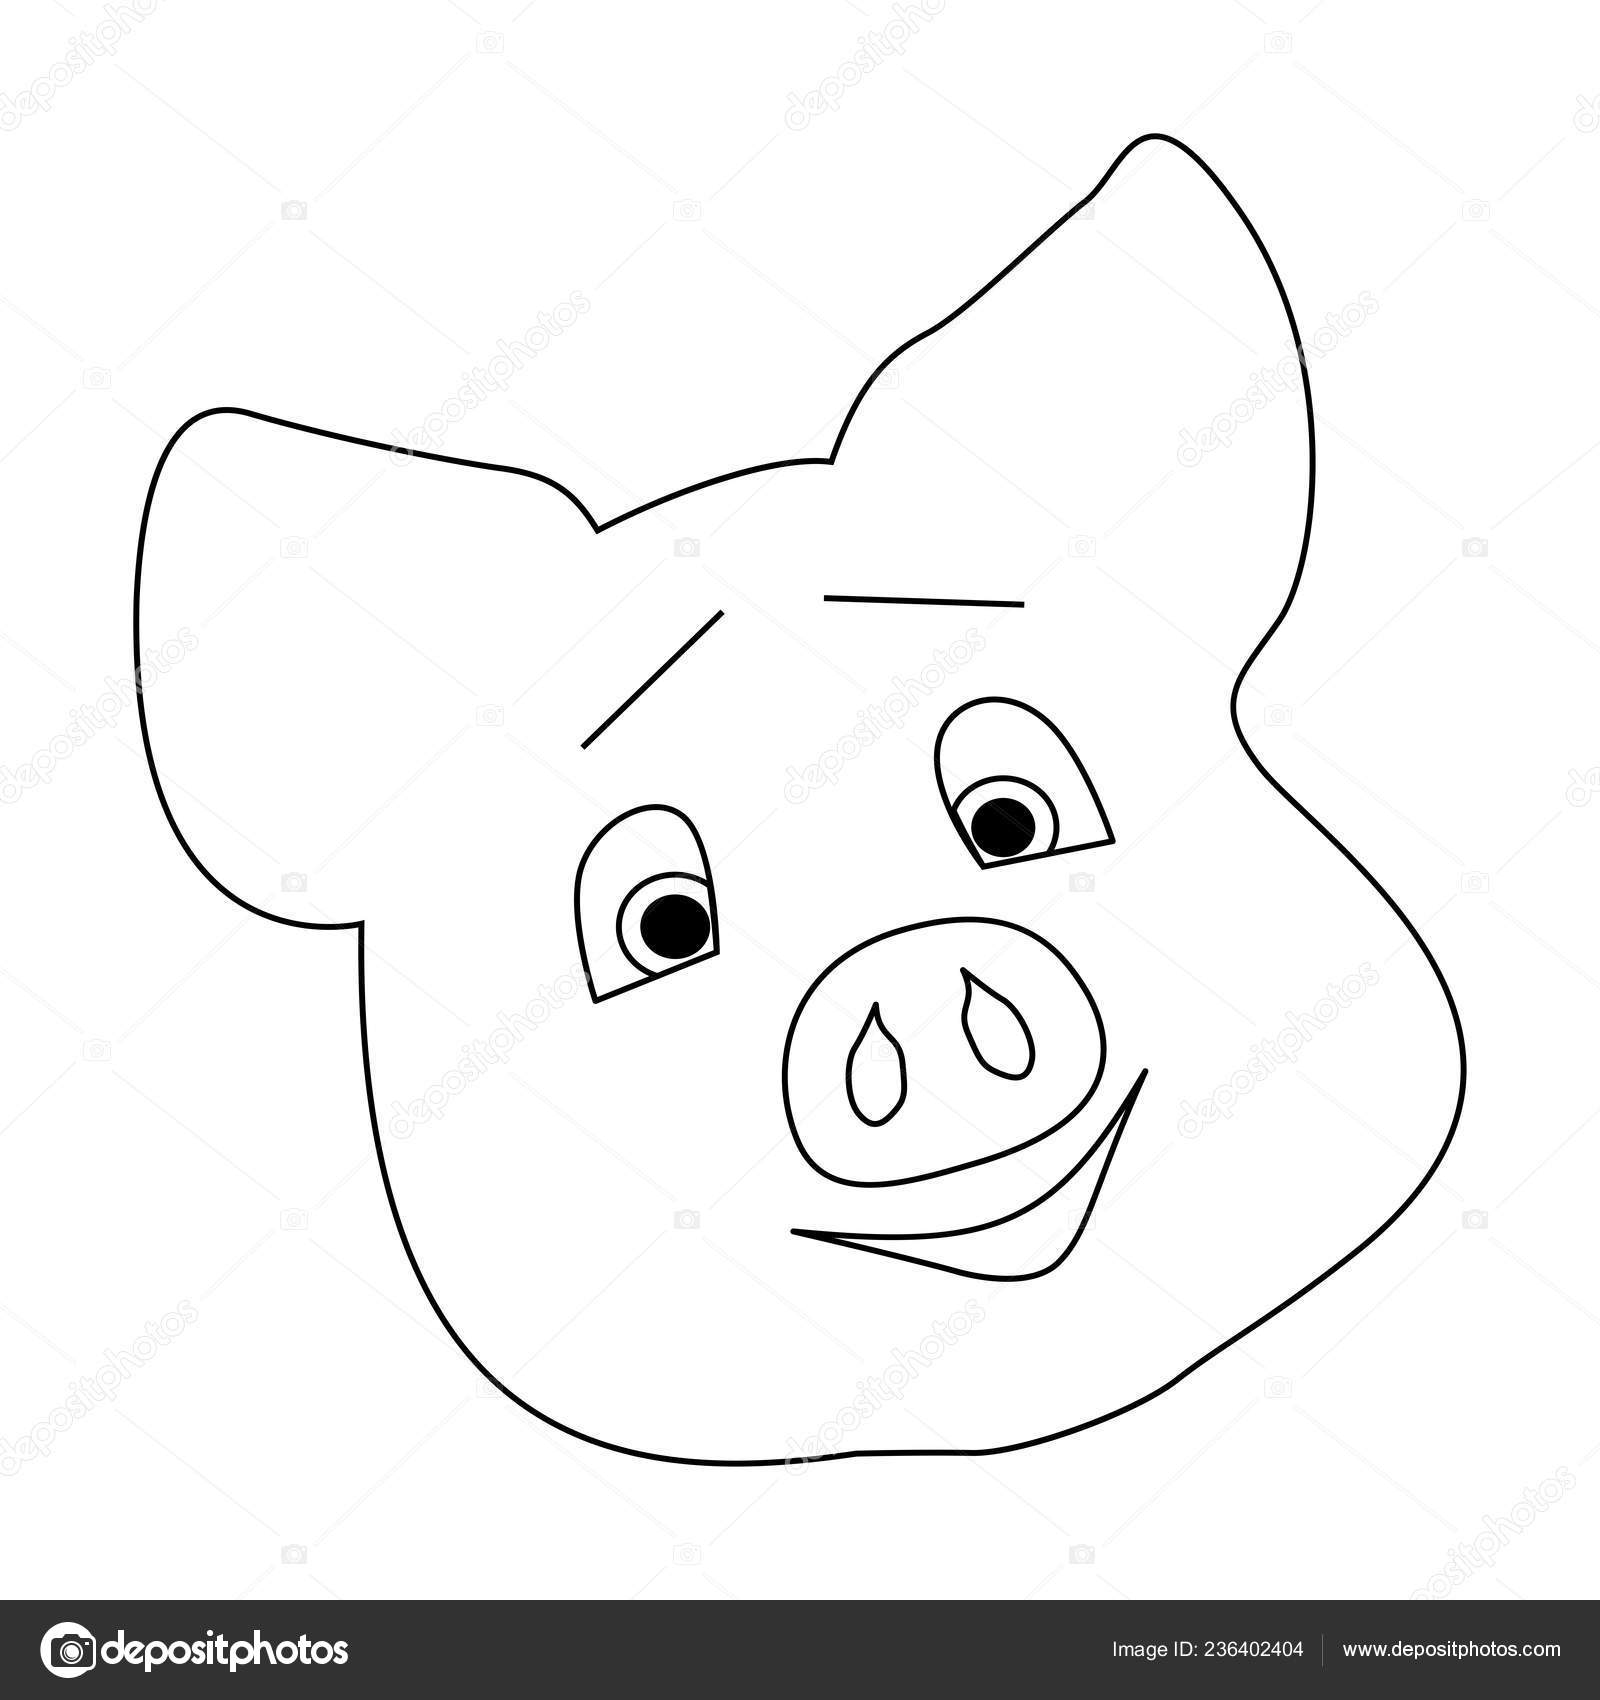 Pig Template   Cute Pig Head Pig Affection Emotion Moved Touched Template